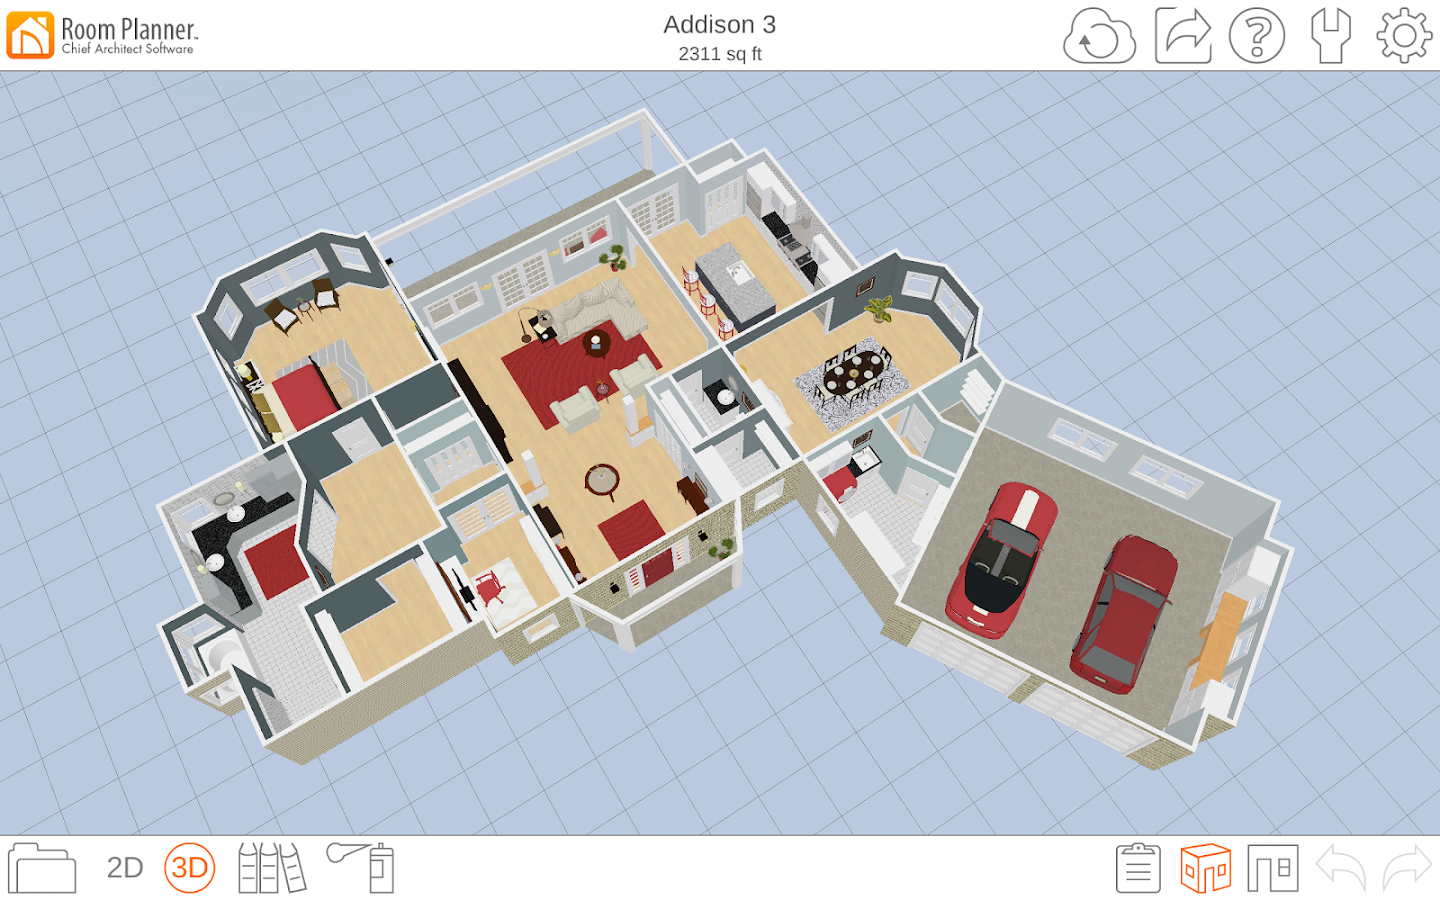 Room planner home design android apps on google play for Room design 3d app